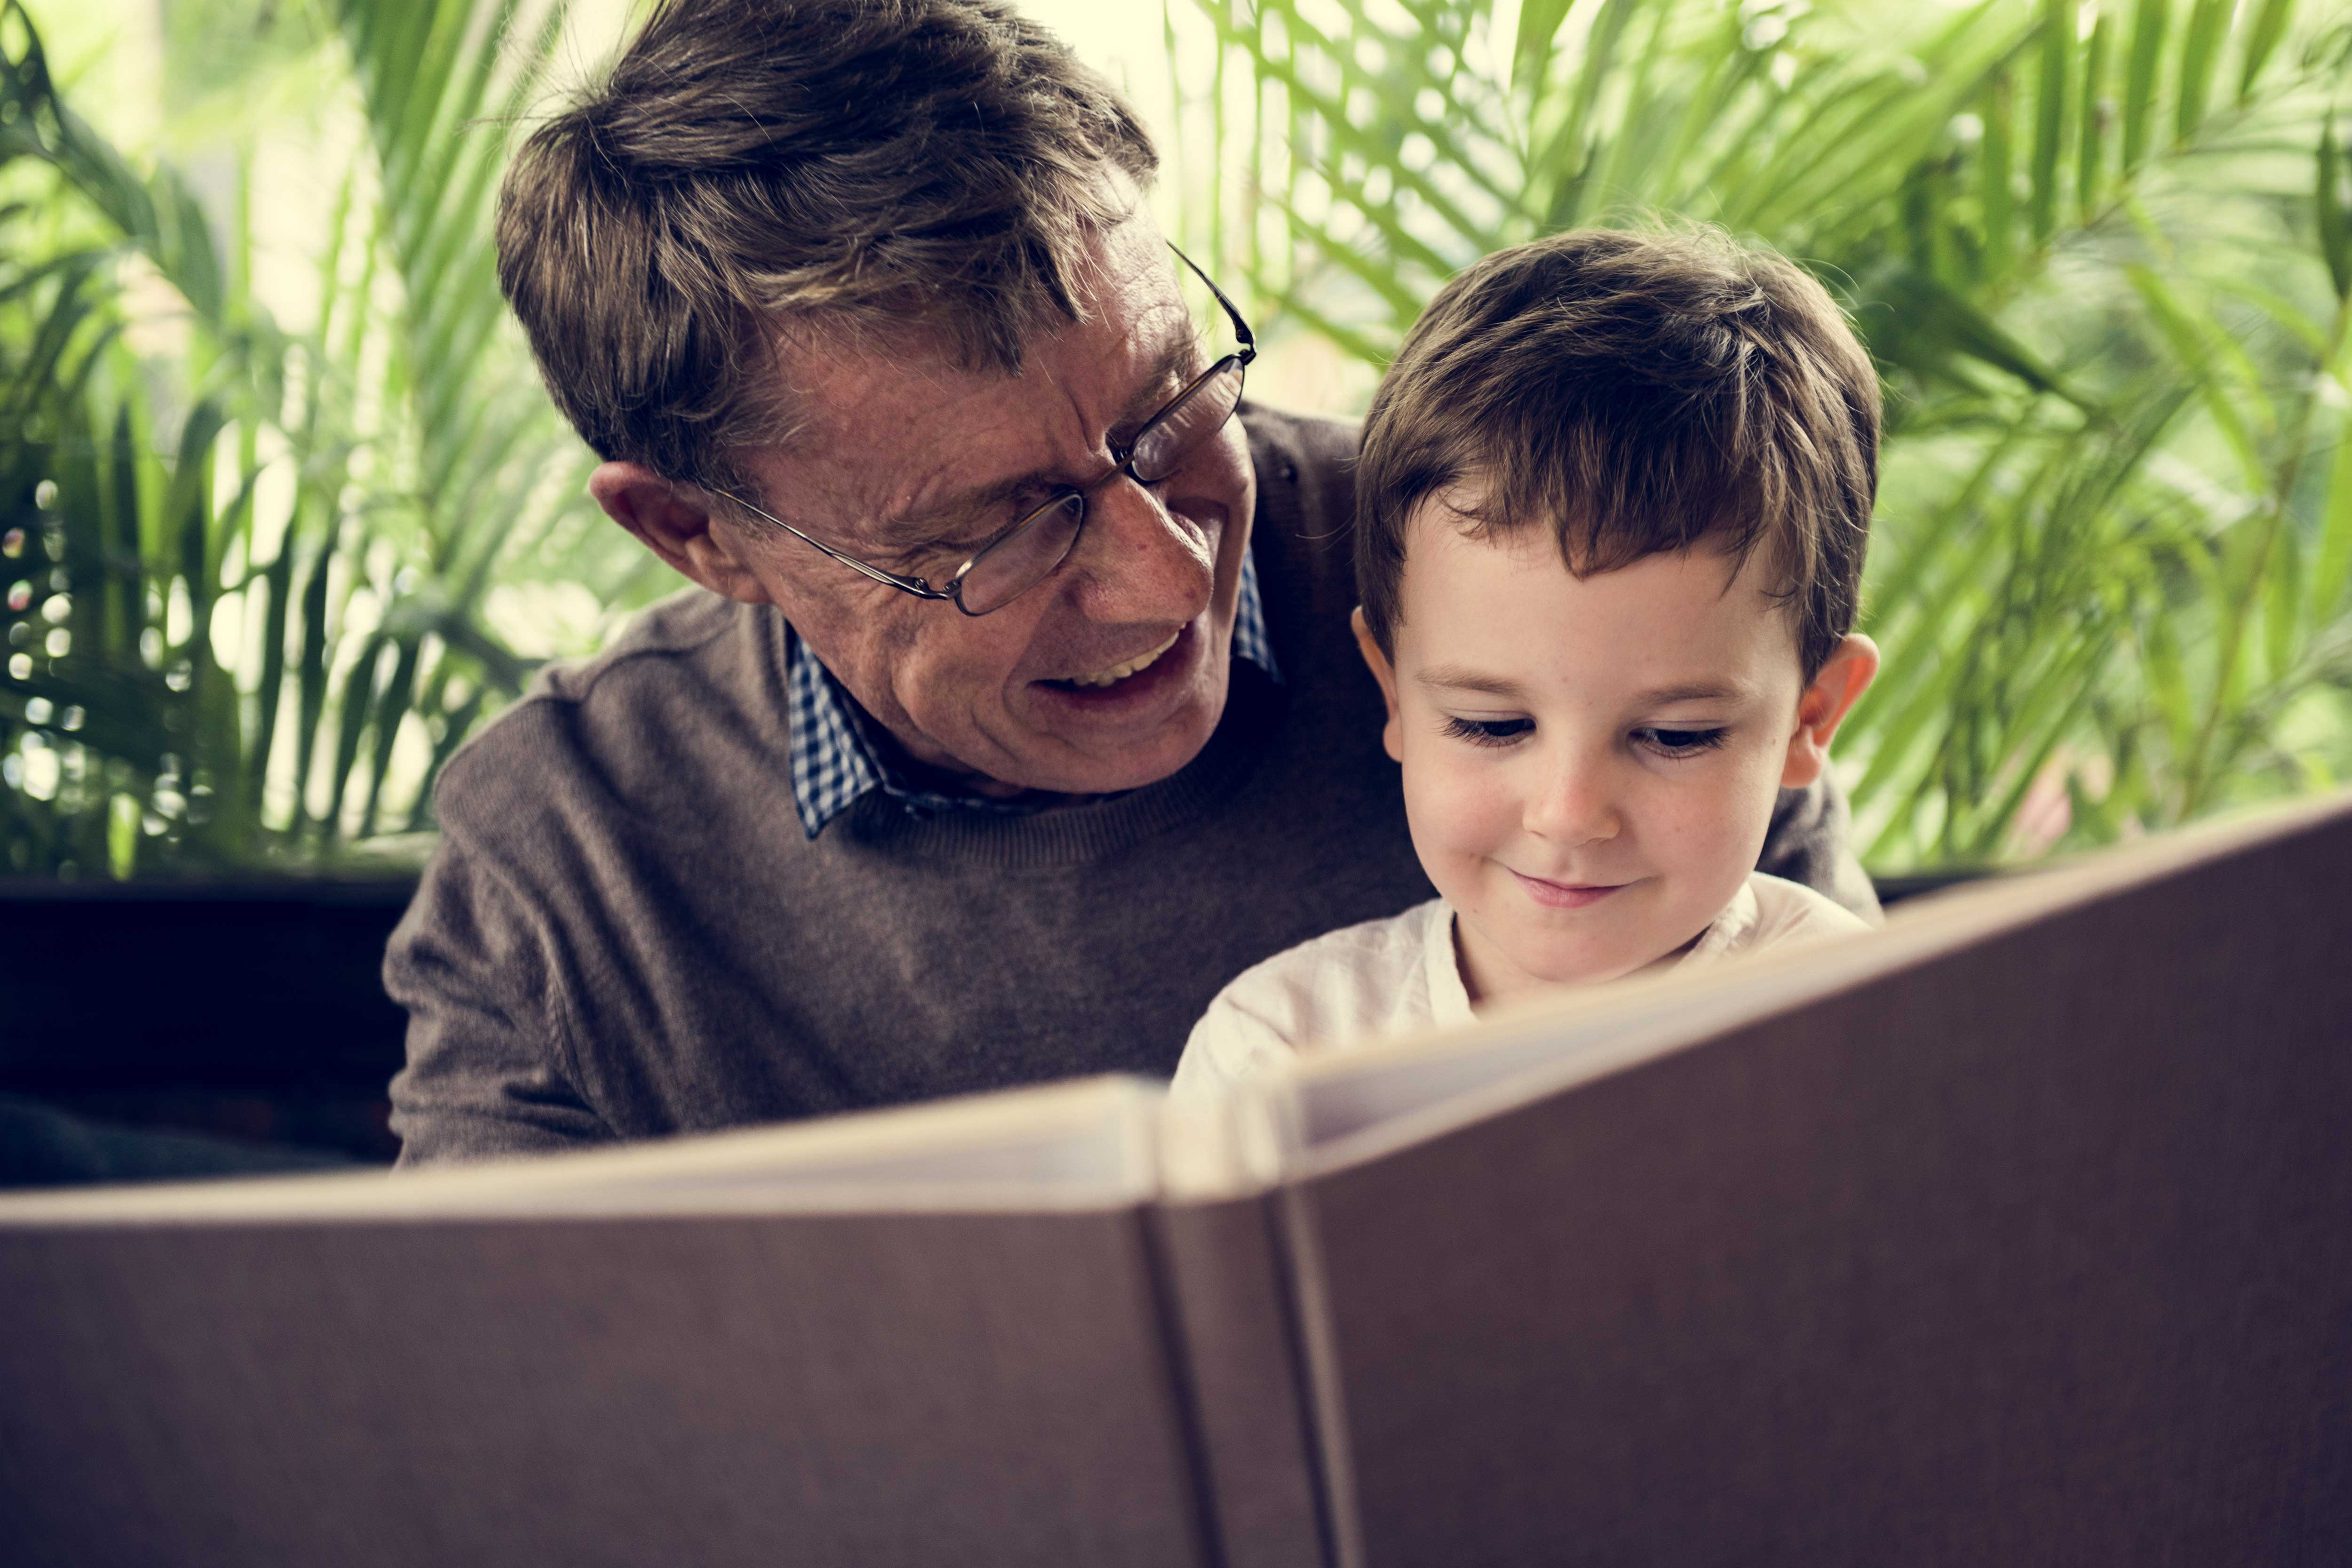 Grandfather reading a book with grandson